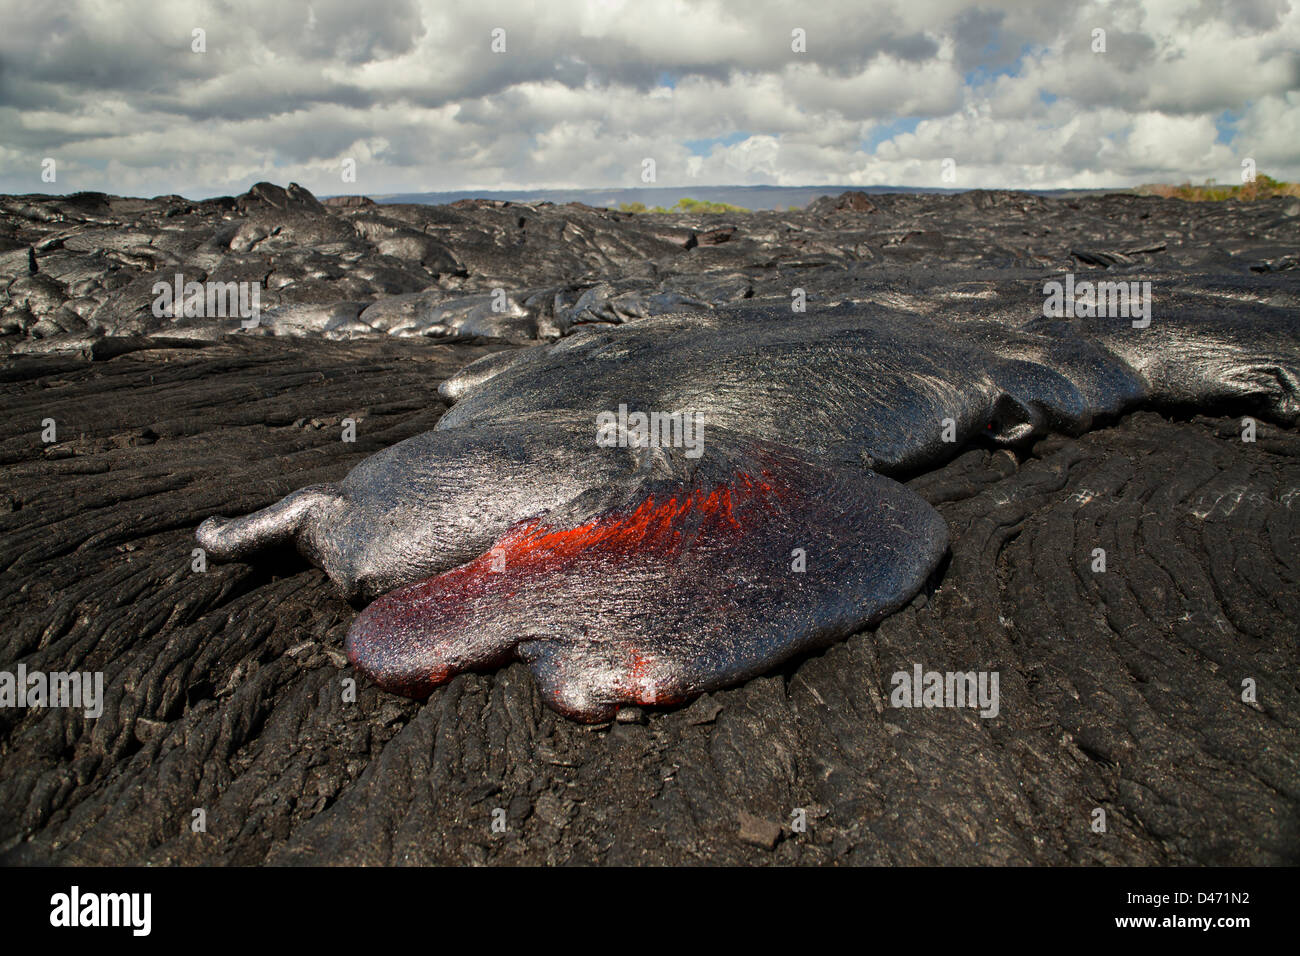 This new Pahoehoe lava flowing from Kilauea is covering an older Pahoehoe flow near Kalapana, Big Island, Hawaii. - Stock Image